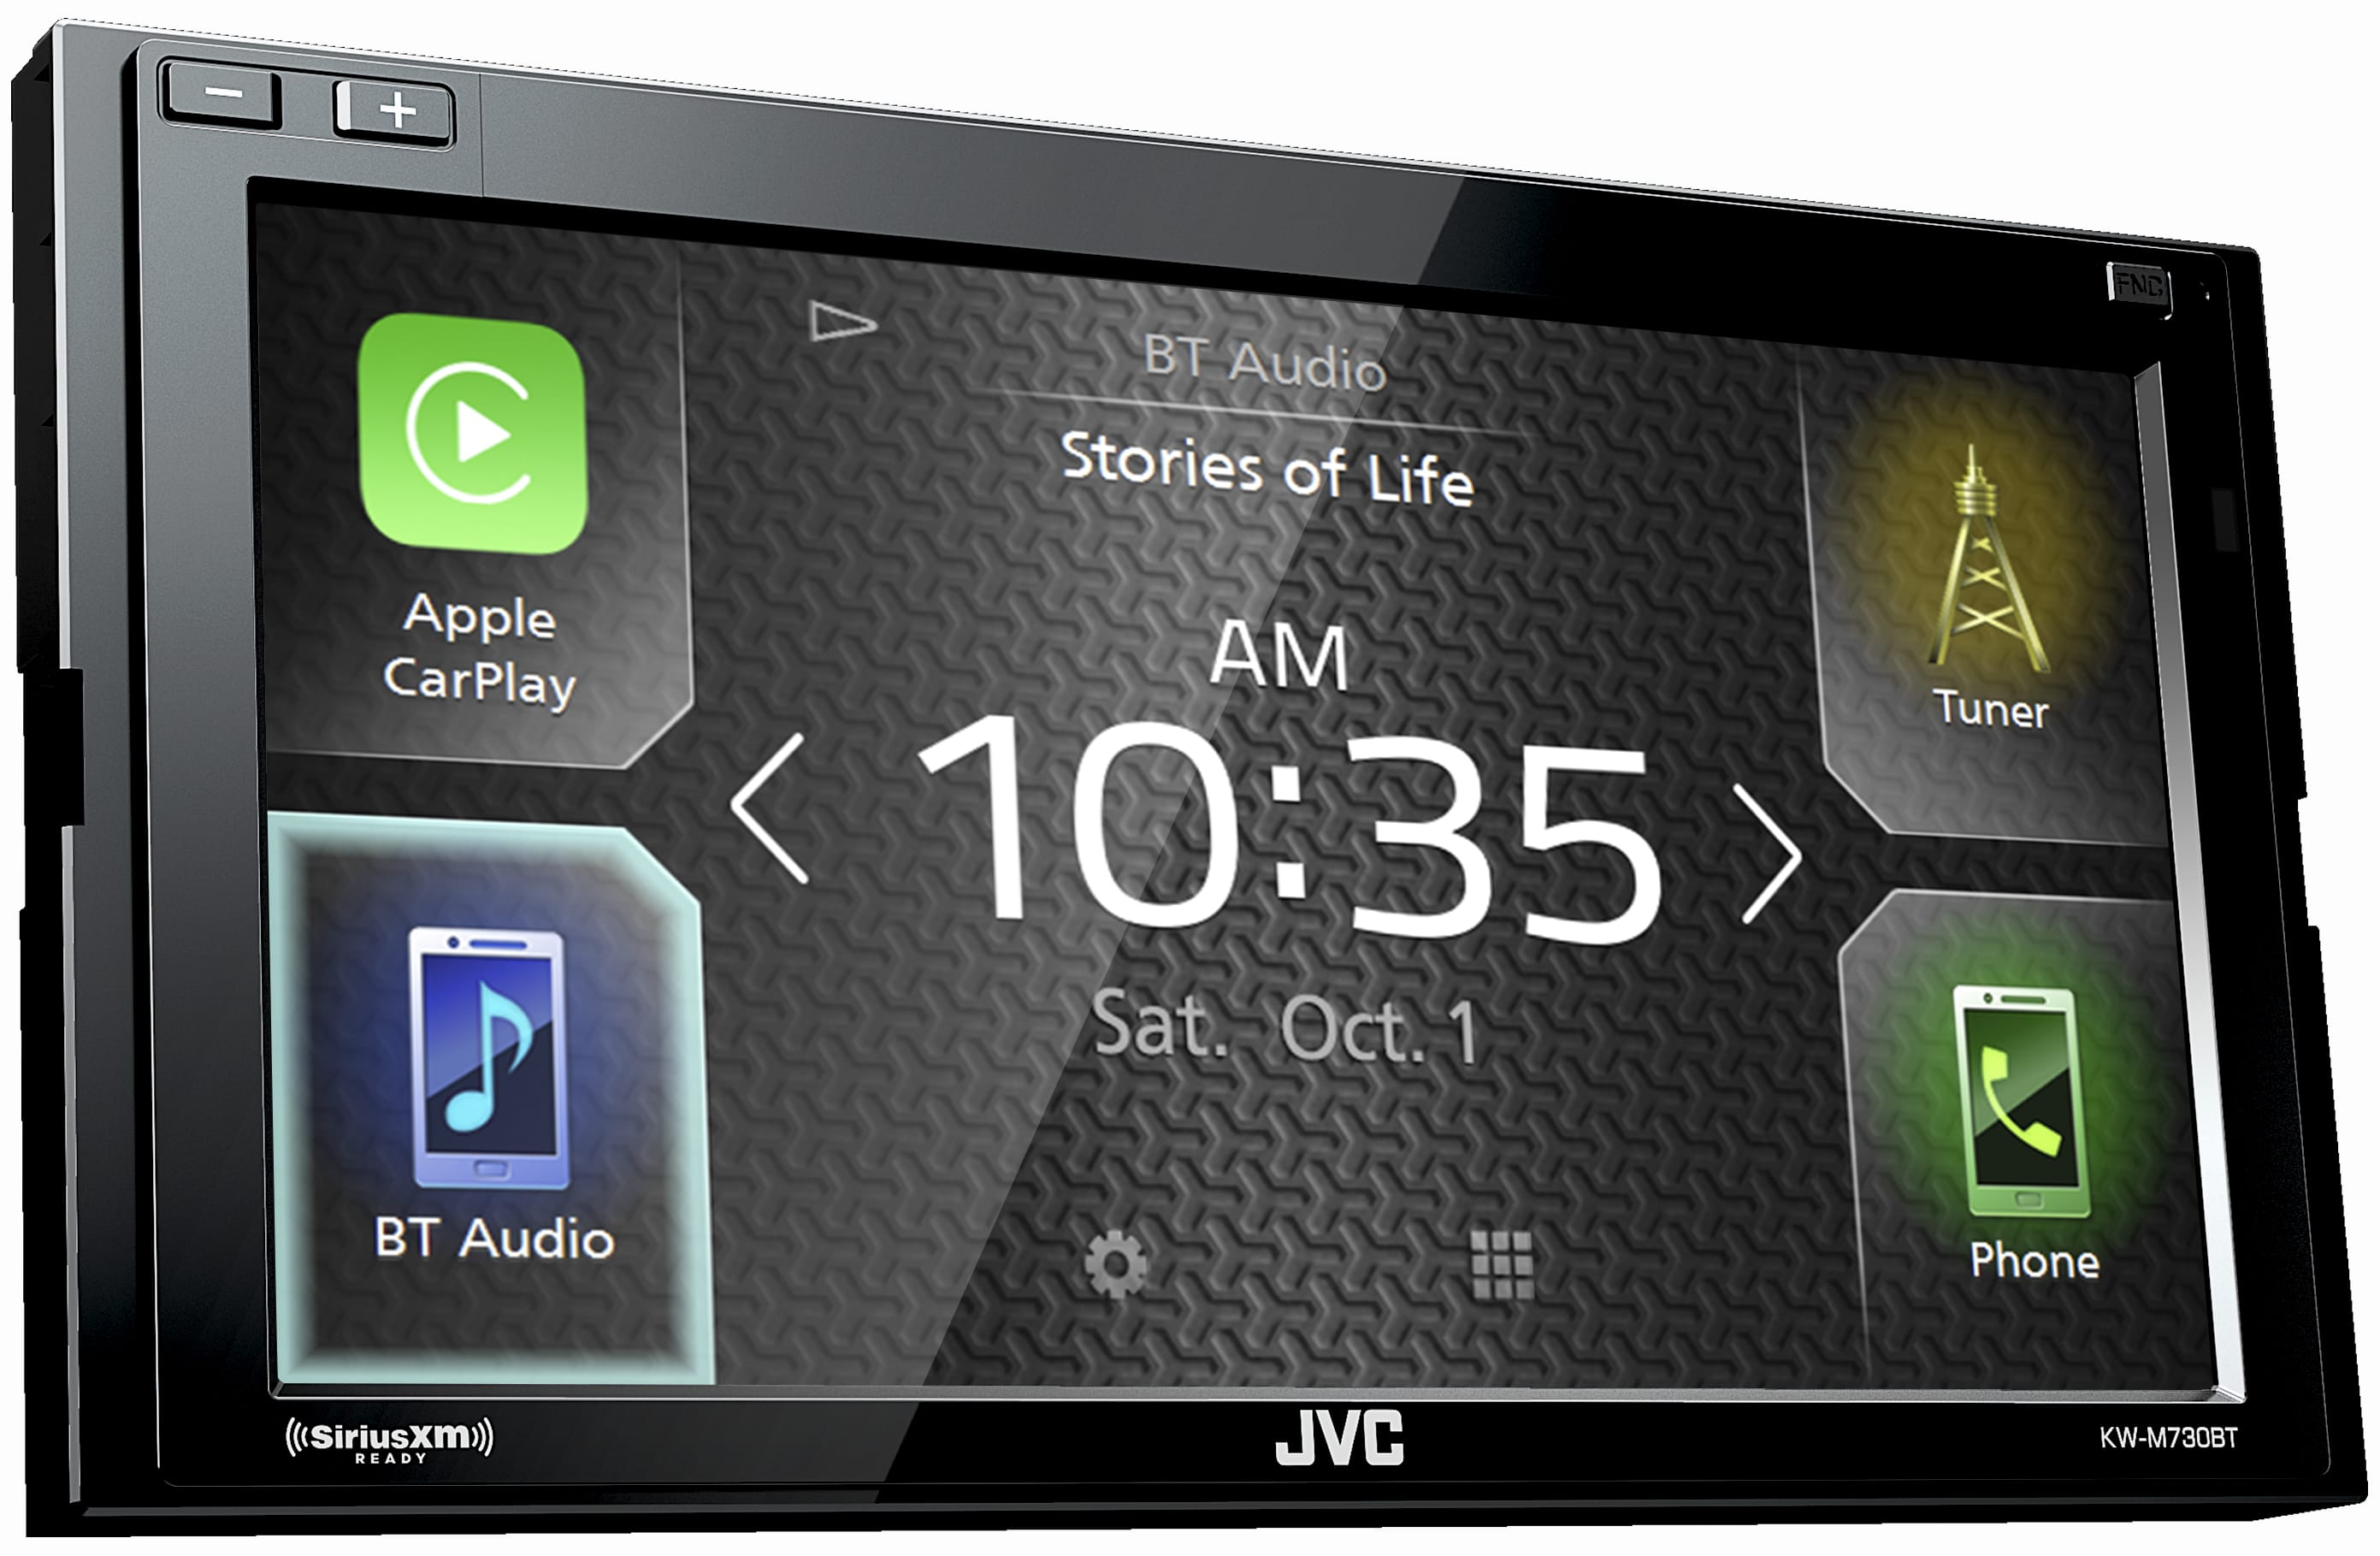 299.98! Installation Included! JVC-KW-M730BT car stereo with Apple CarPlay & Android Auto